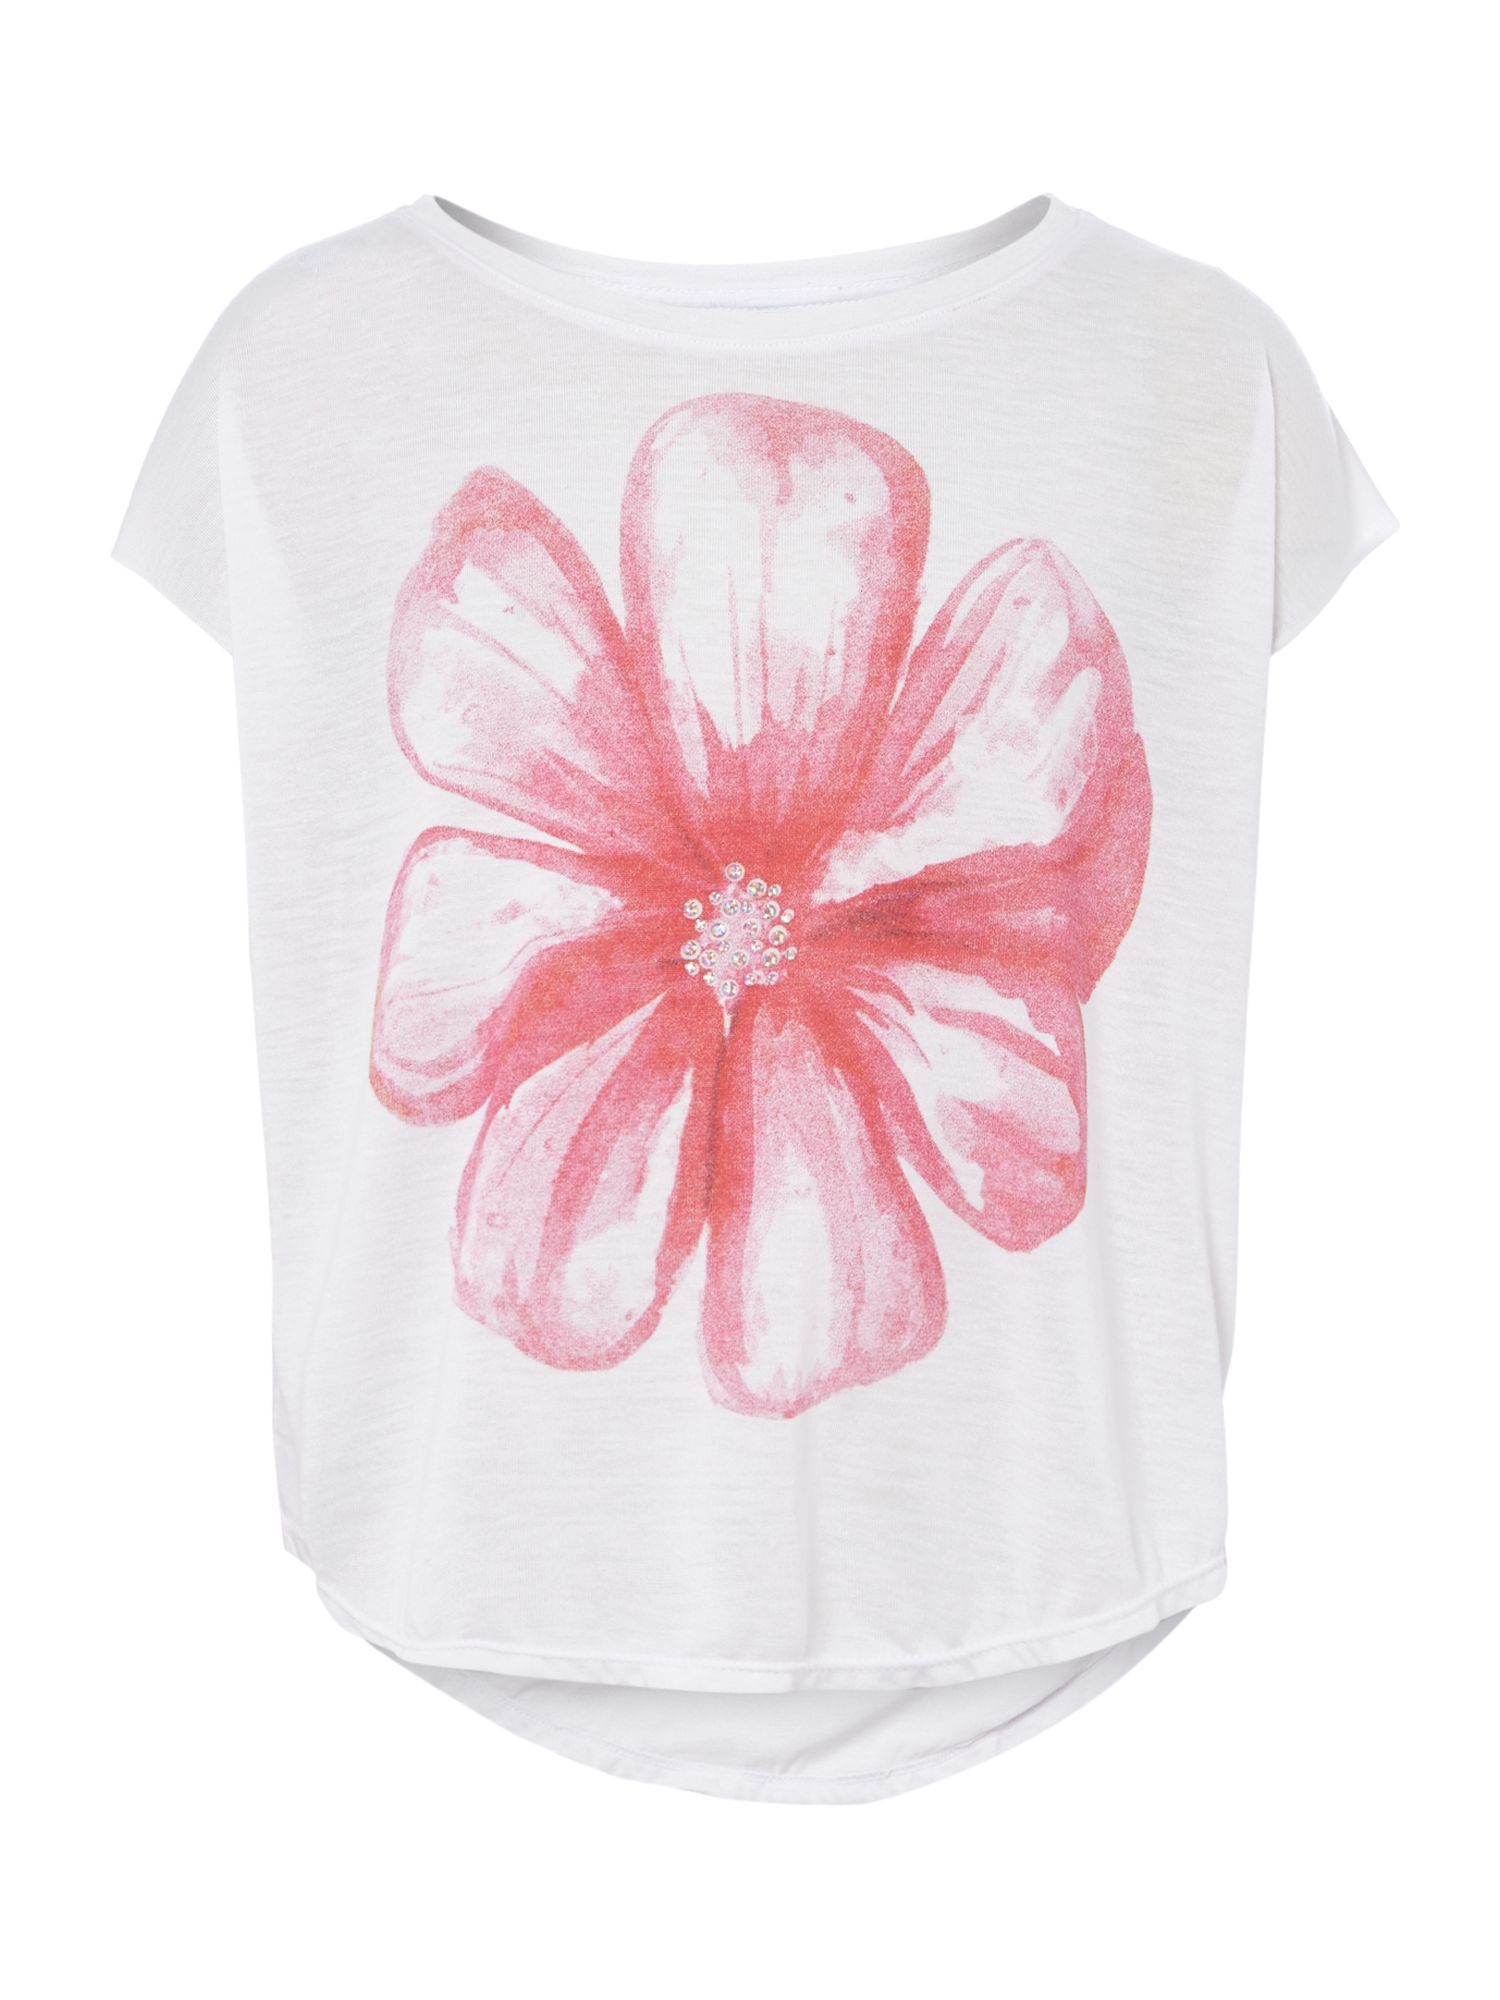 Girls glitter flower t-shirt